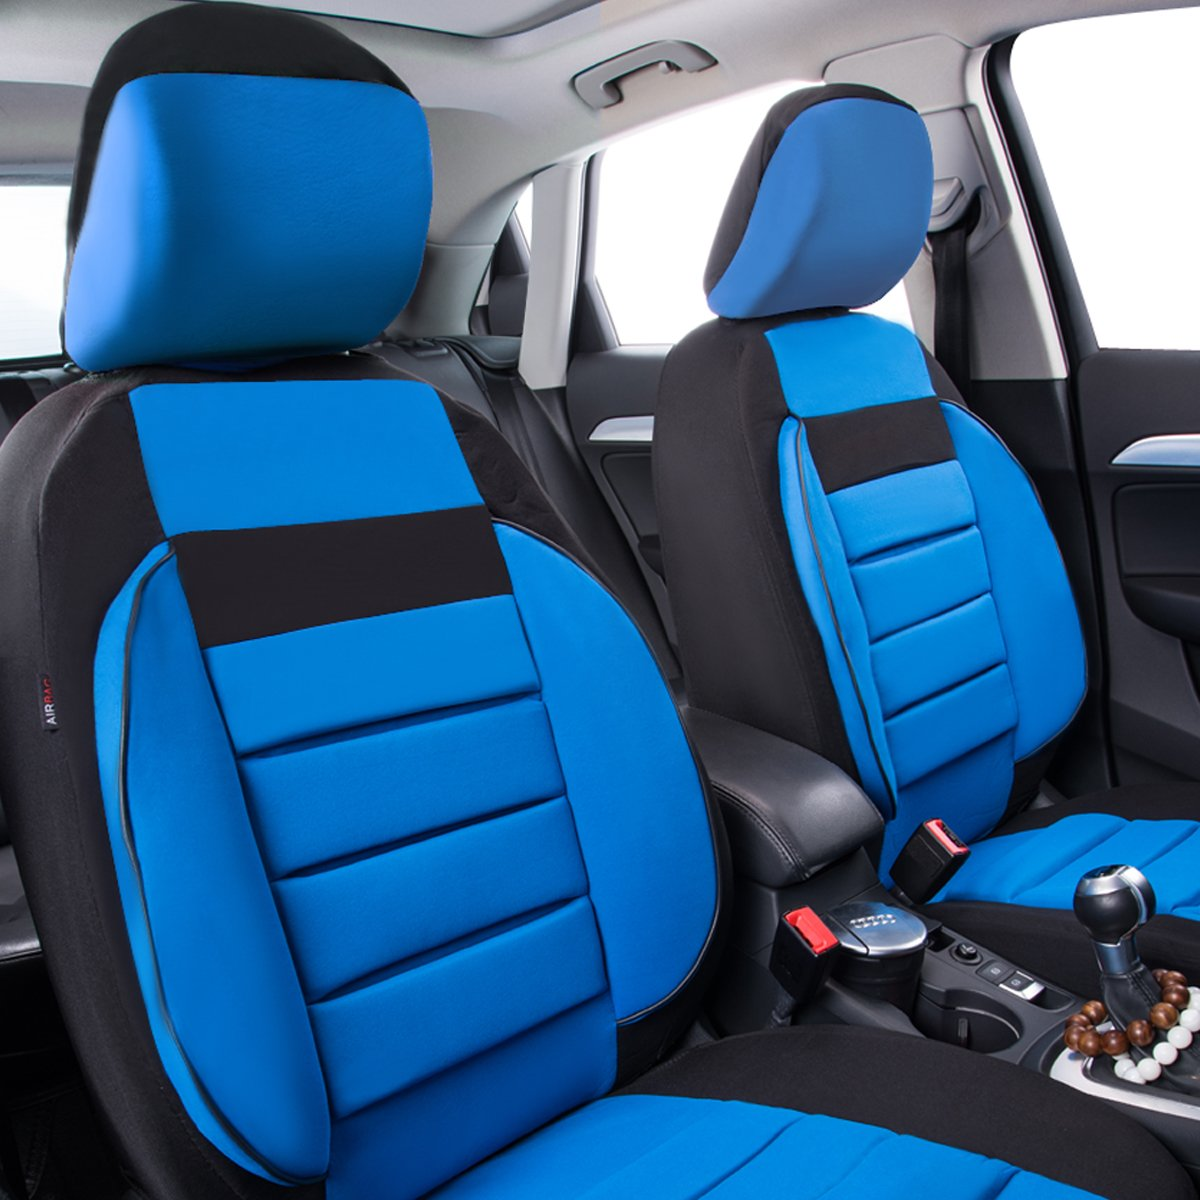 CAR PASS Universal Automobile 2 Front Seat Covers Set Package-Fit for Vehicles,Black and RED With Composite Sponge Inside,Airbag Compatiable Black with Red